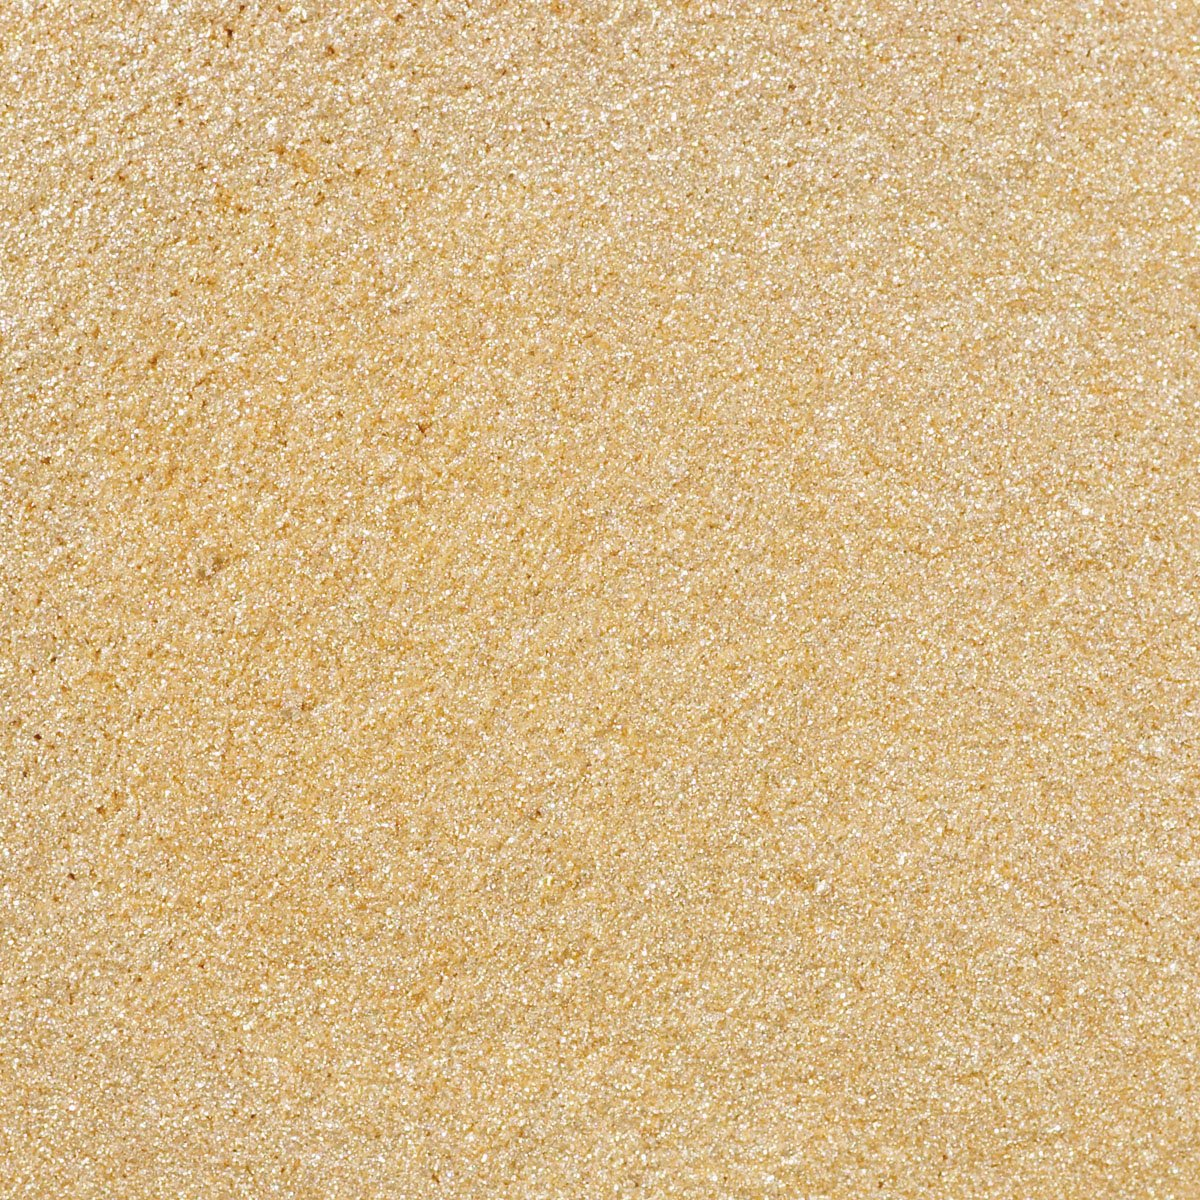 Wilton Pearl Dust, Gold-0.05 Ounce (1,4g)